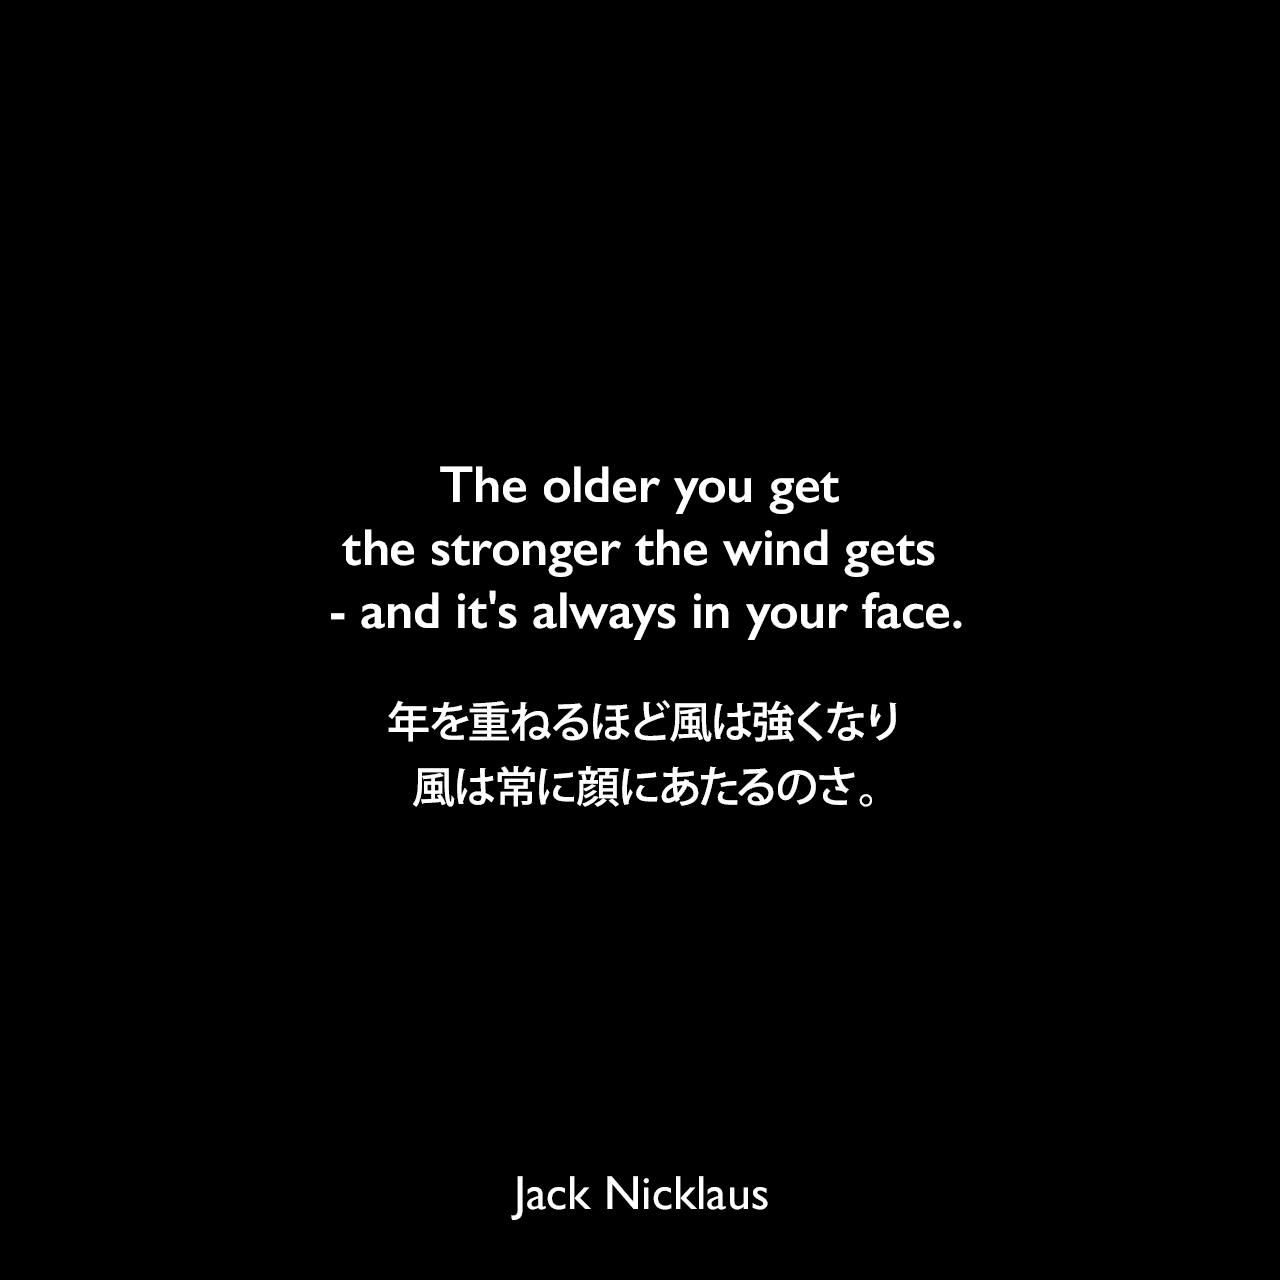 The older you get the stronger the wind gets - and it's always in your face.年を重ねるほど風は強くなり、風は常に顔にあたるのさ。- 1990年2月のインターナショナル・ヘラルド・トリビューン紙よりJack Nicklaus